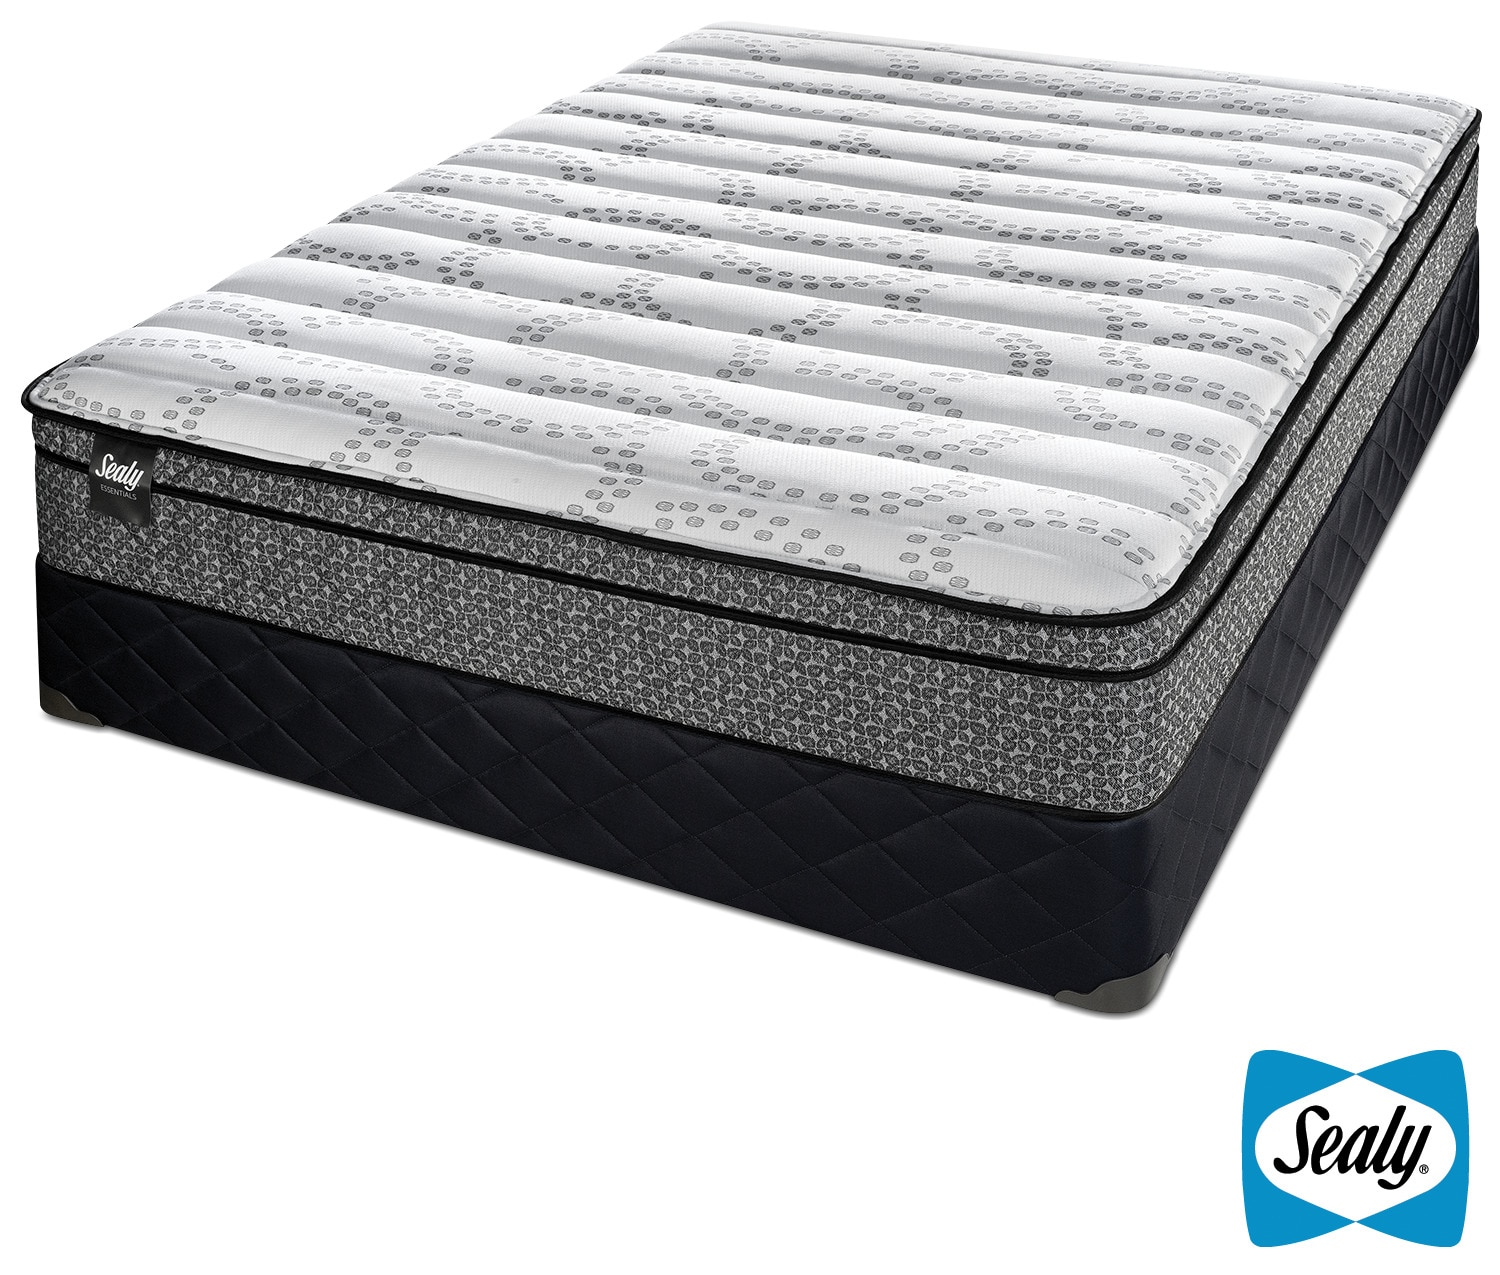 Sealy Phases Cushion Firm Full Mattress and Boxspring Set